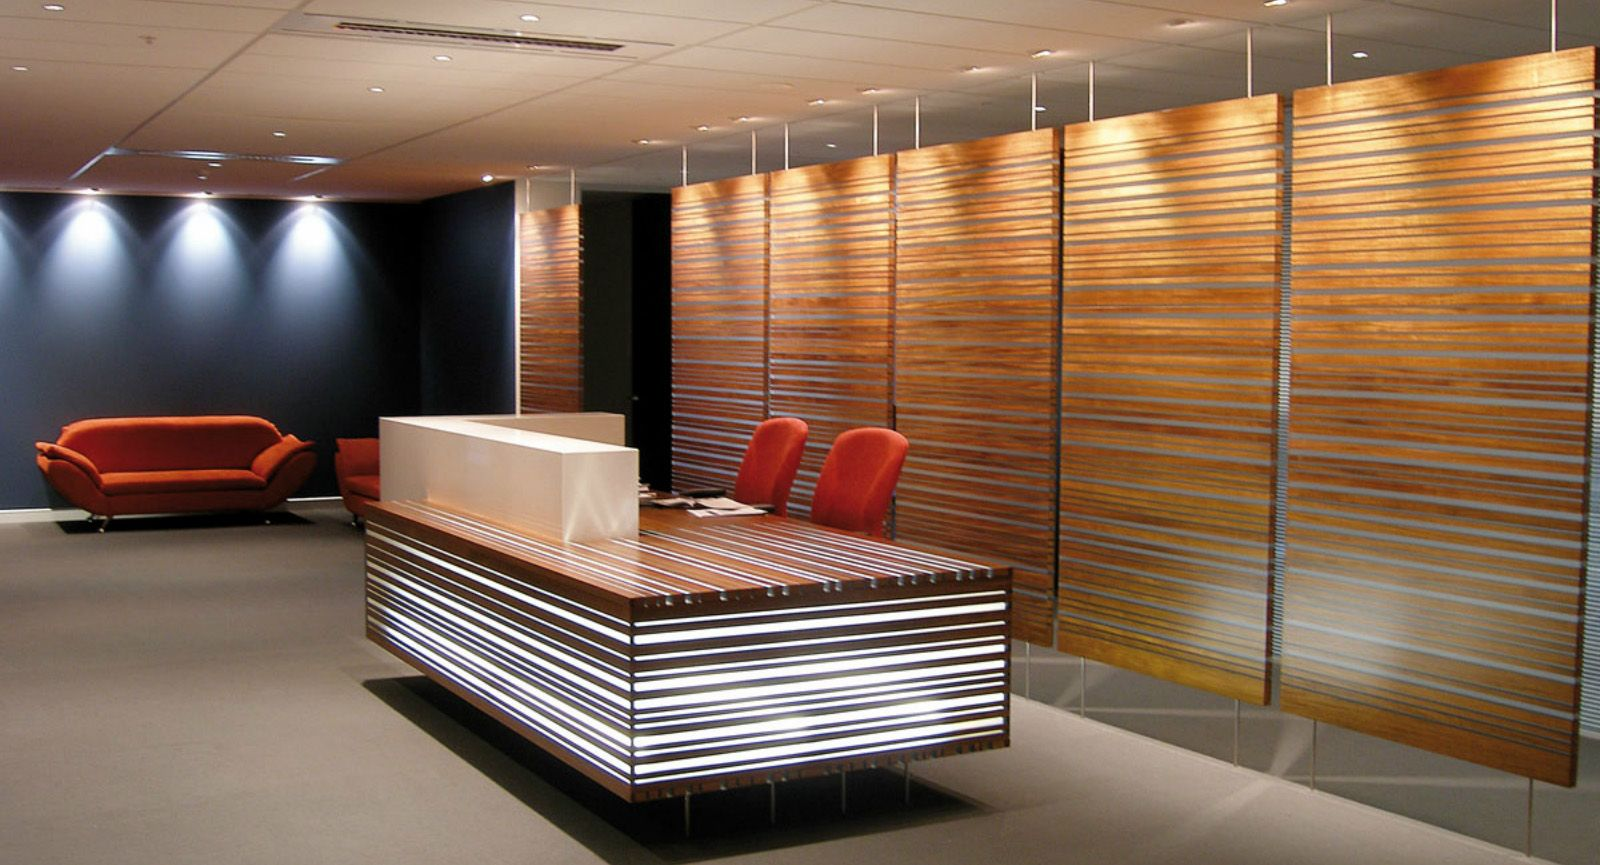 contemporary panelling interior wood wall paneling designs probably good design alternative for your design suggestion - Wooden Panelling For Interior Walls